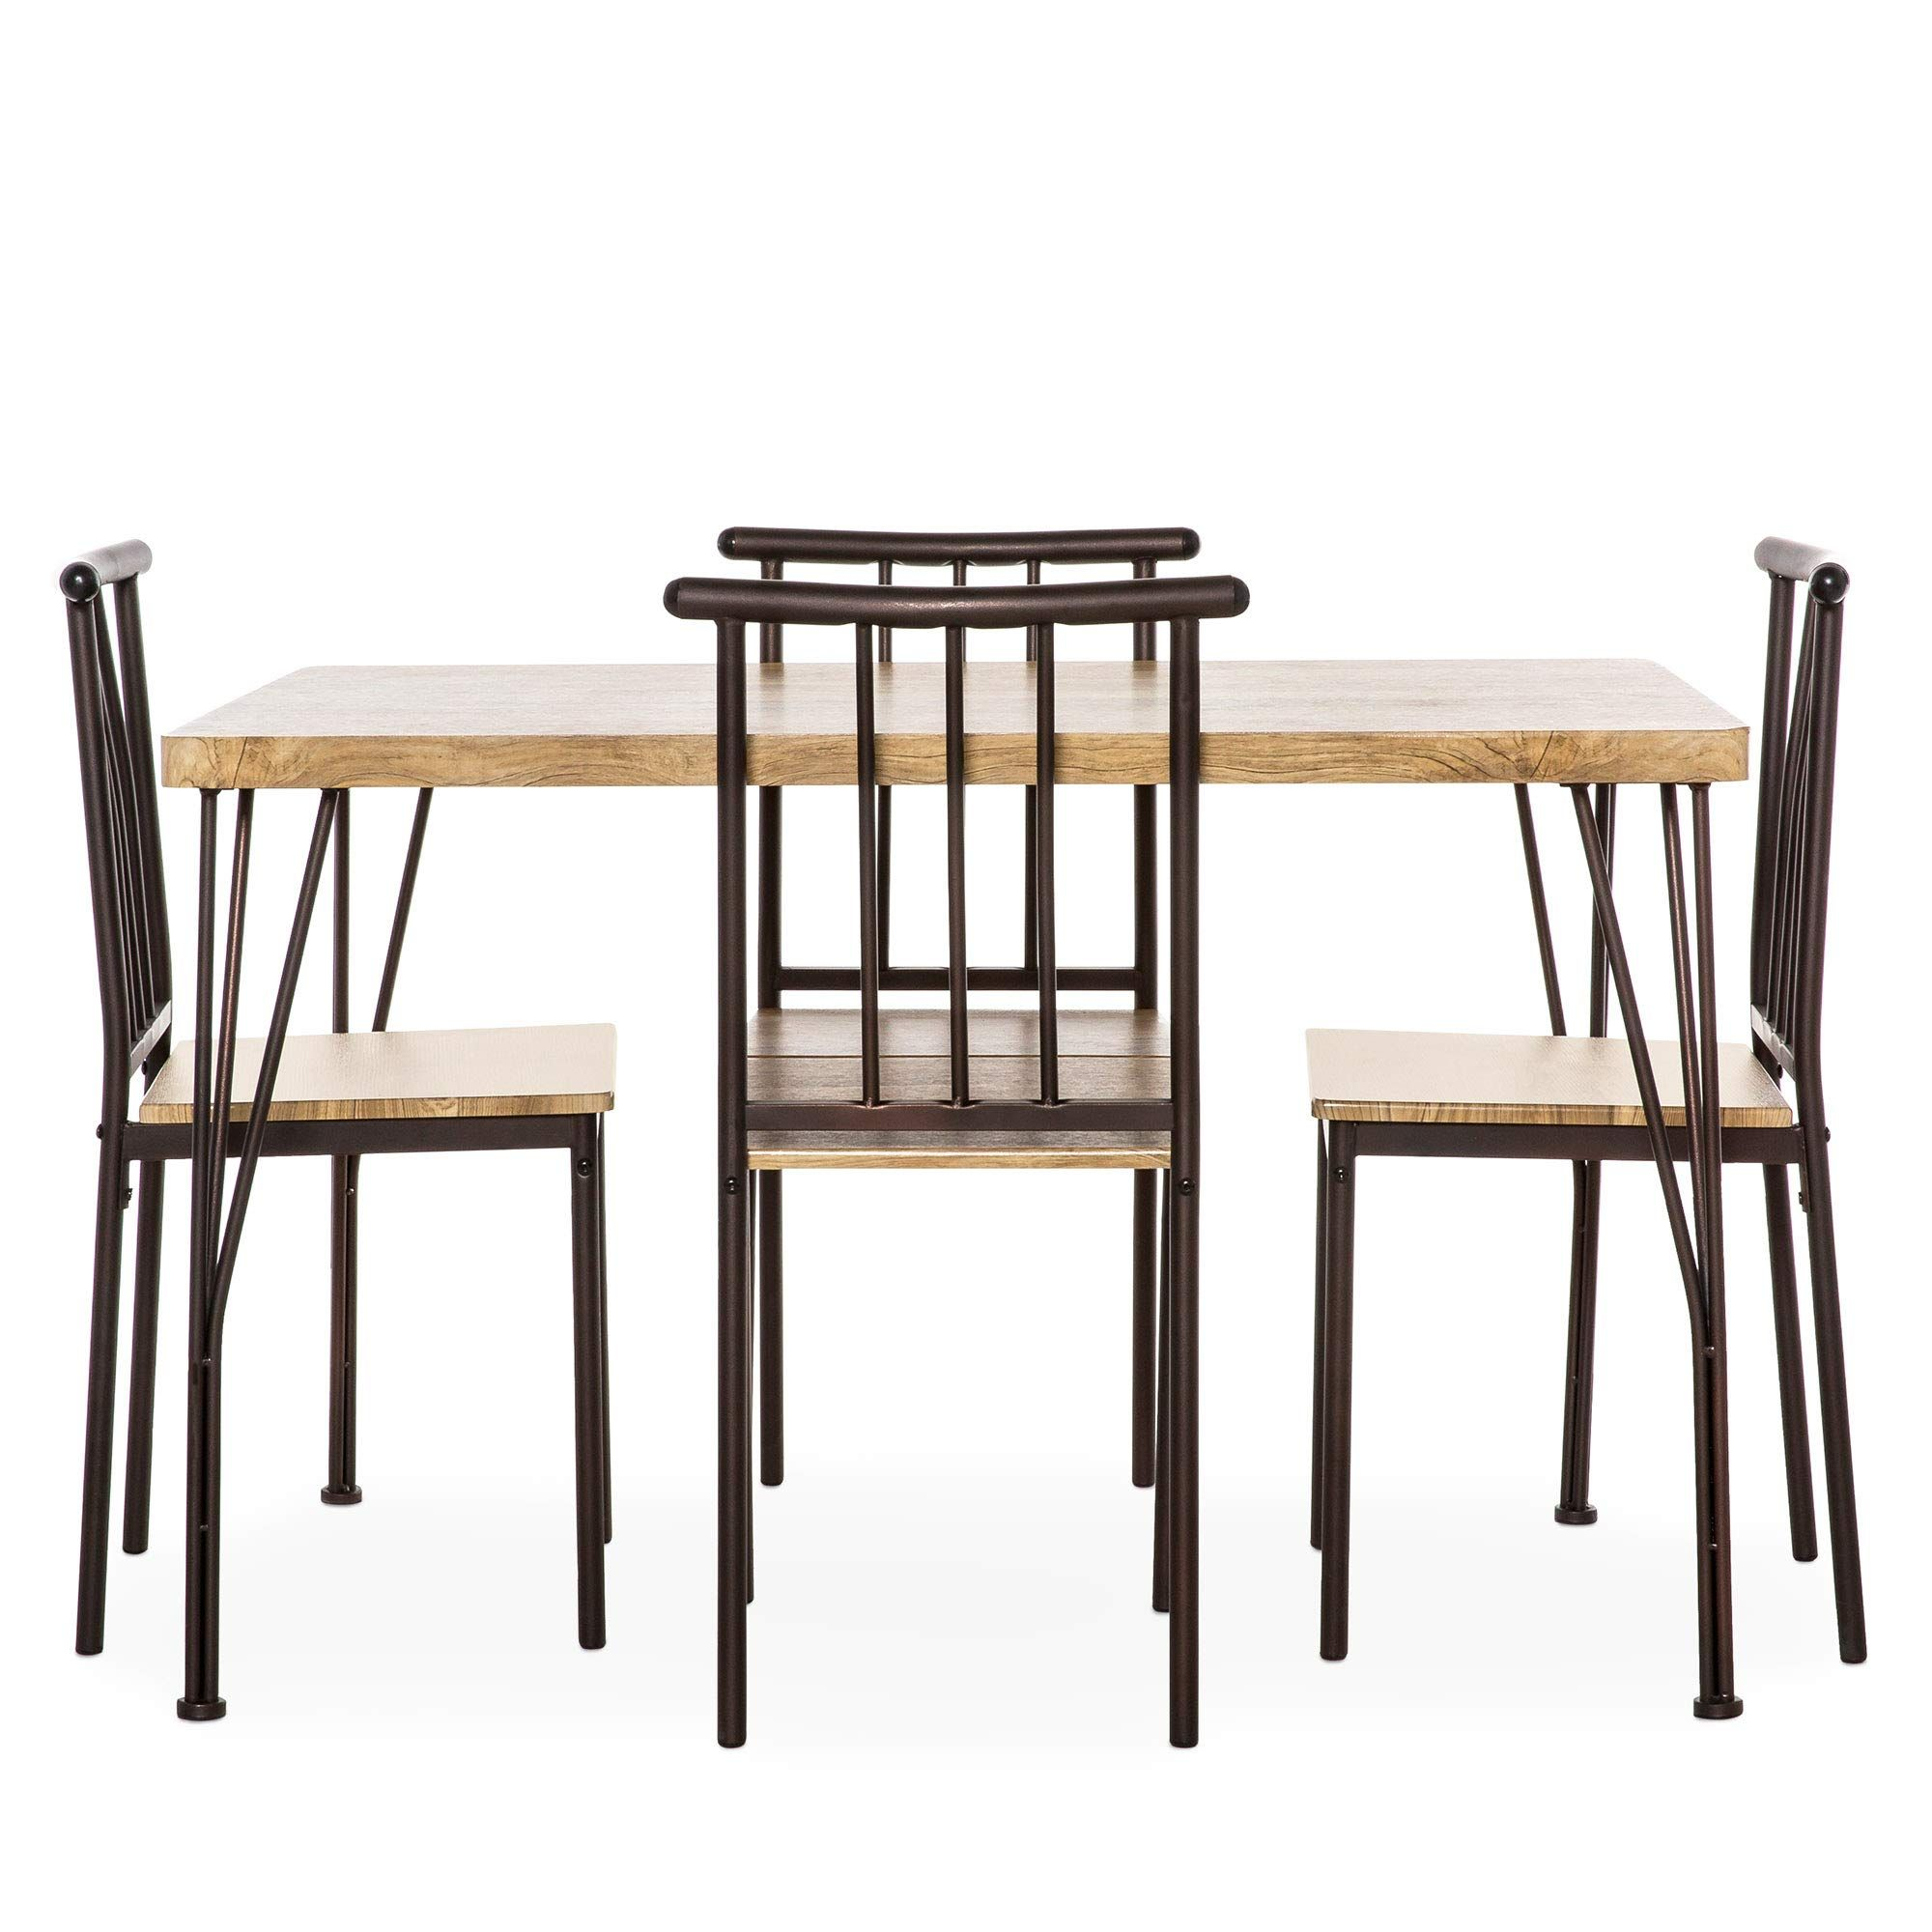 Best Choice Products 5 Piece Indoor Modern Metal And Wood Rectangular Dining Table Furniture Rectangular Dining Table Solid Oak Dining Table Wood Dining Table